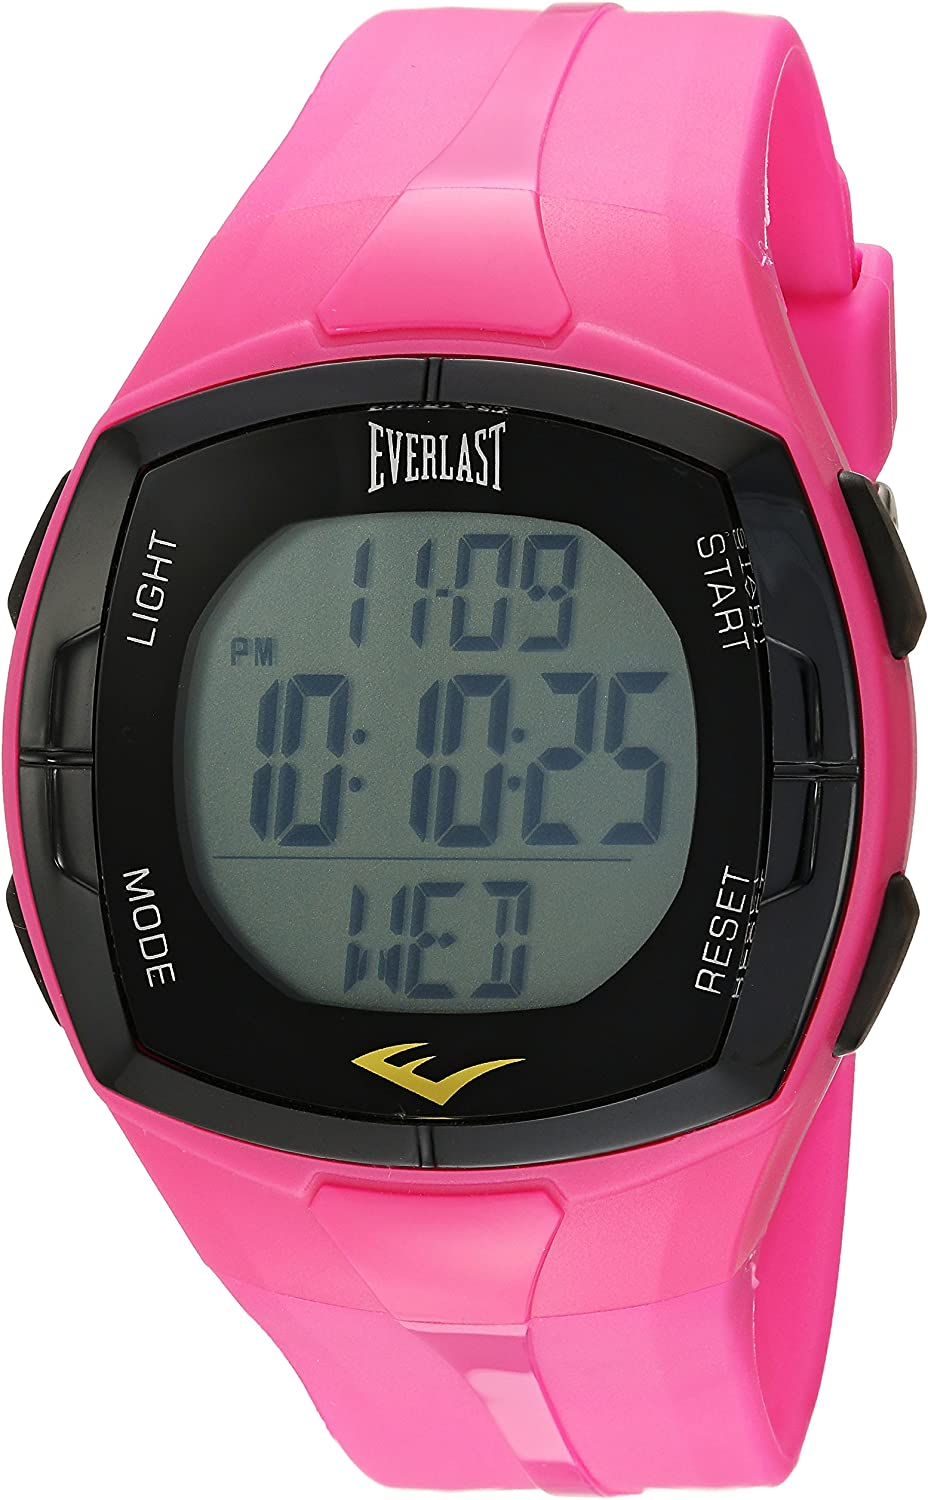 Everlast Chinese-Automatic Fitness Watch with Rubber Strap, Pink, 22 Model EVWHR002PK